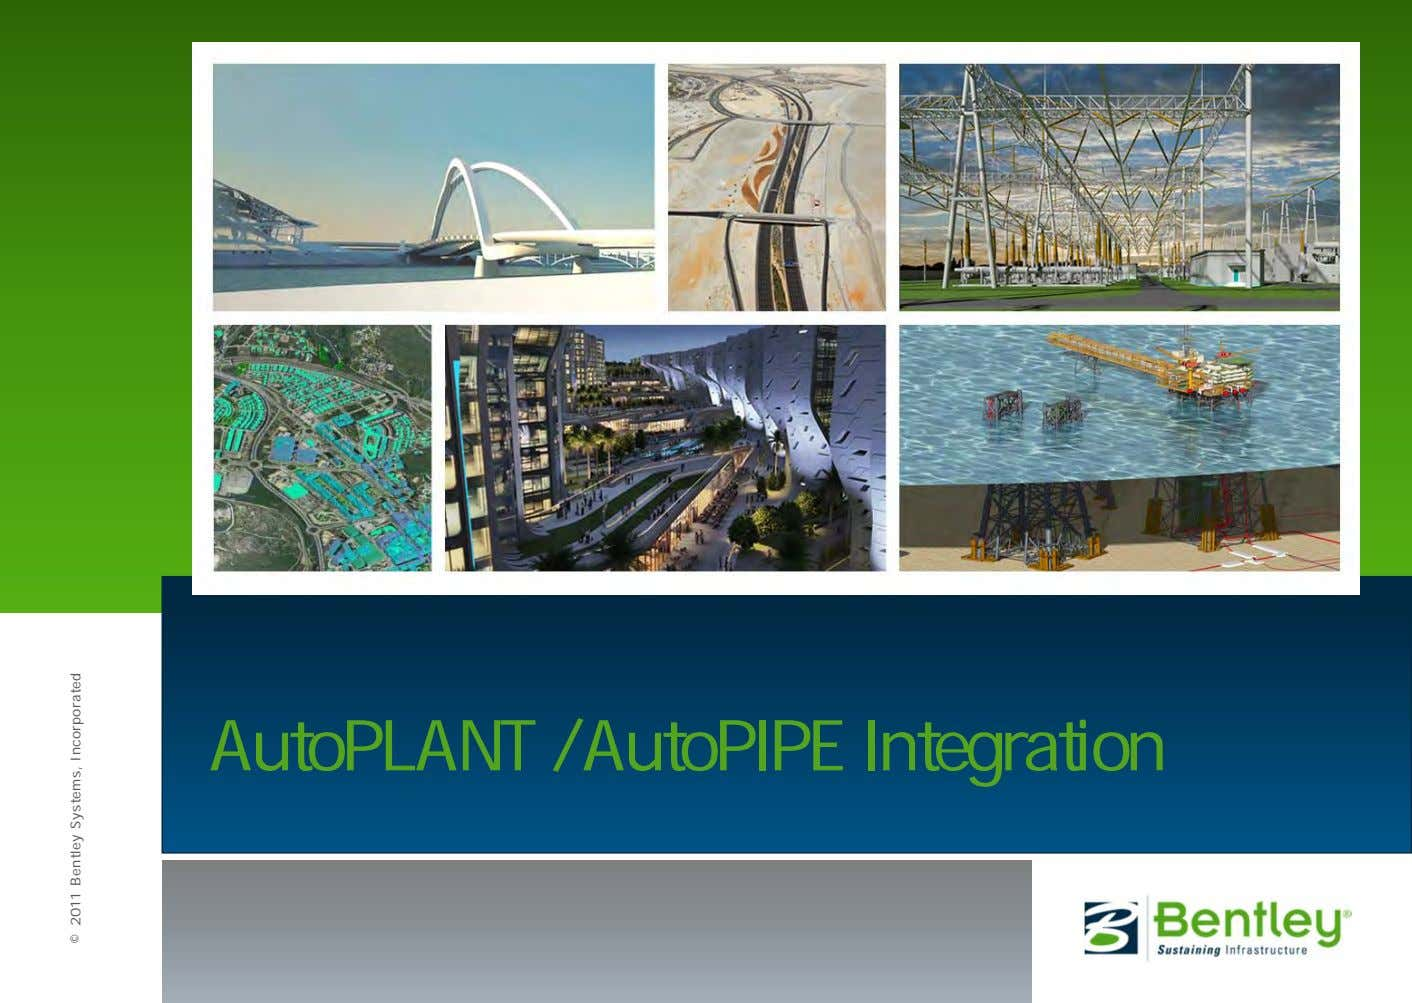 AutoPLANT / AutoPIPE Integration © 2011 Bentley Systems, Incorporated